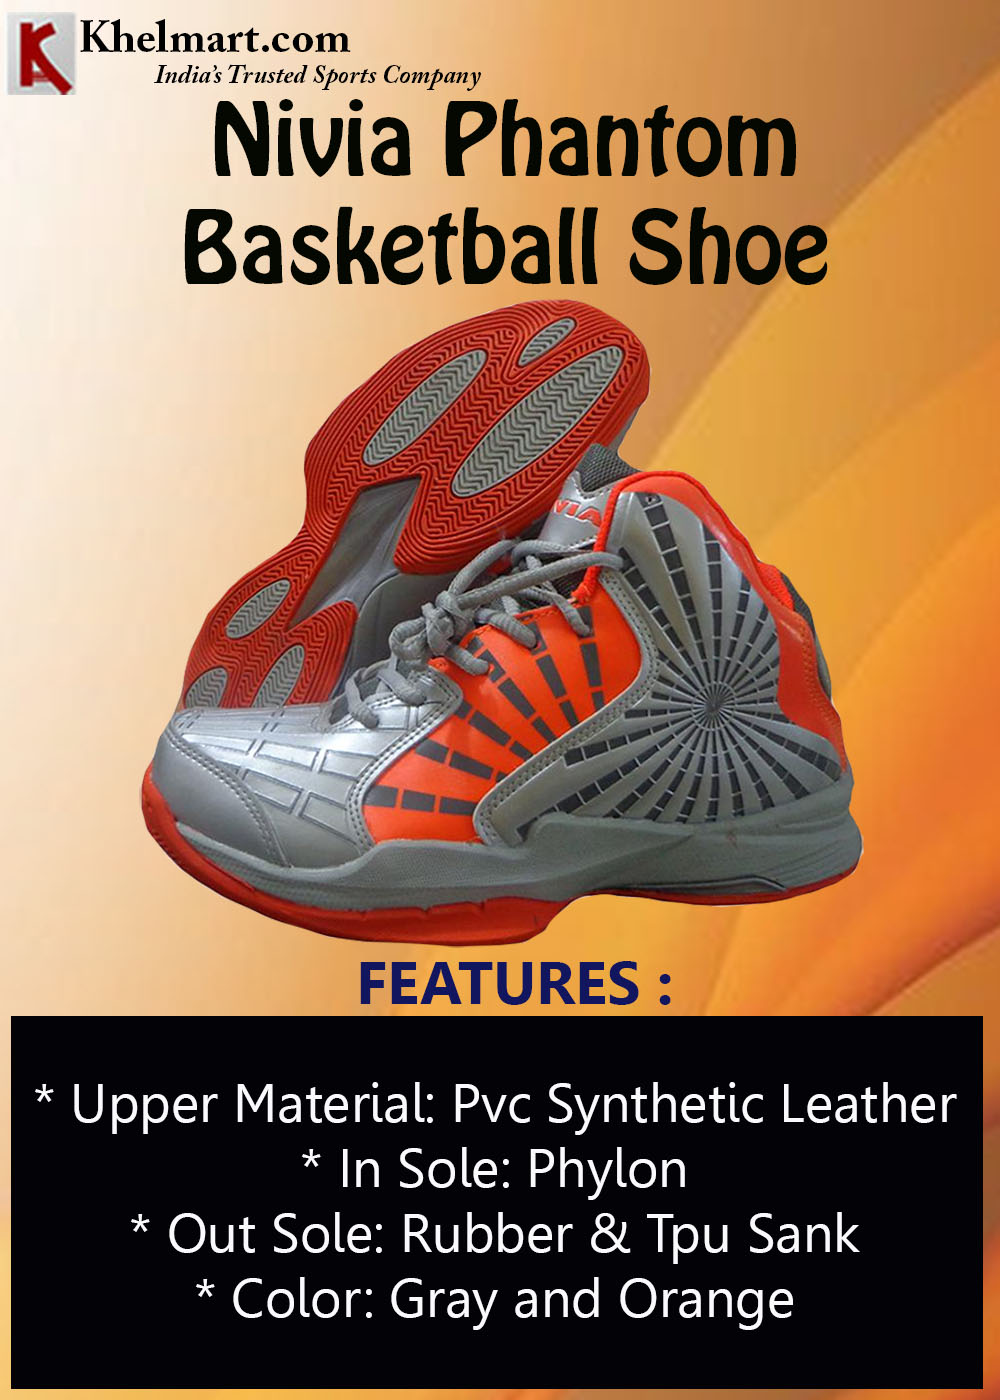 Nivia Phantom Basketball Shoe